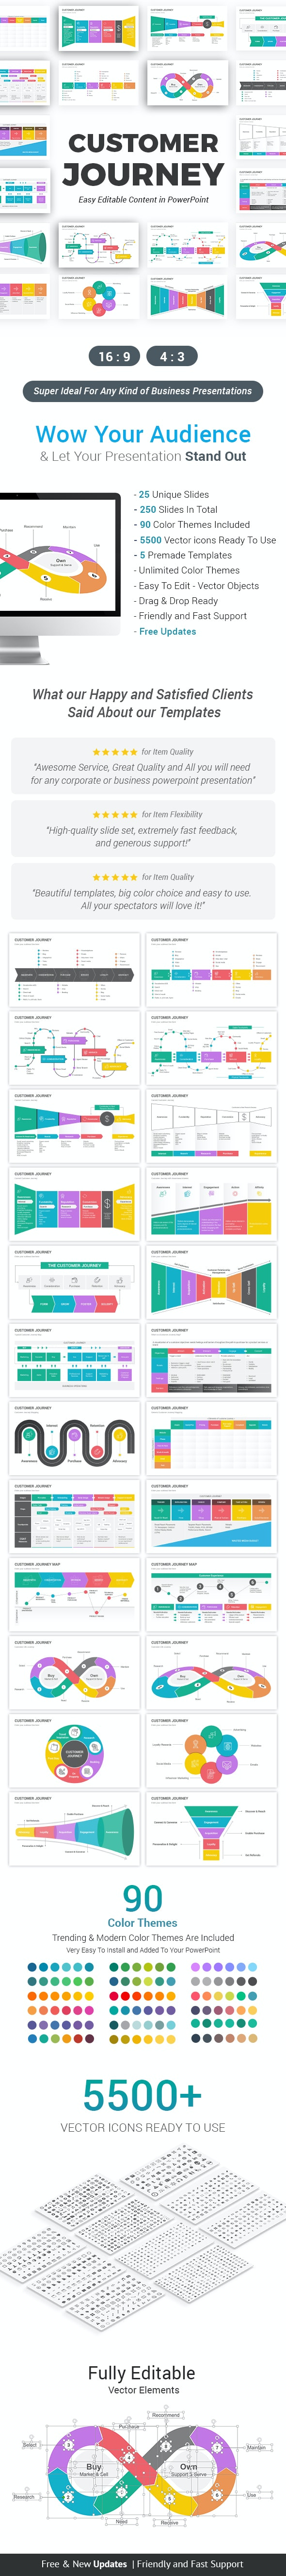 Customer Journey Map PowerPoint Template diagrams